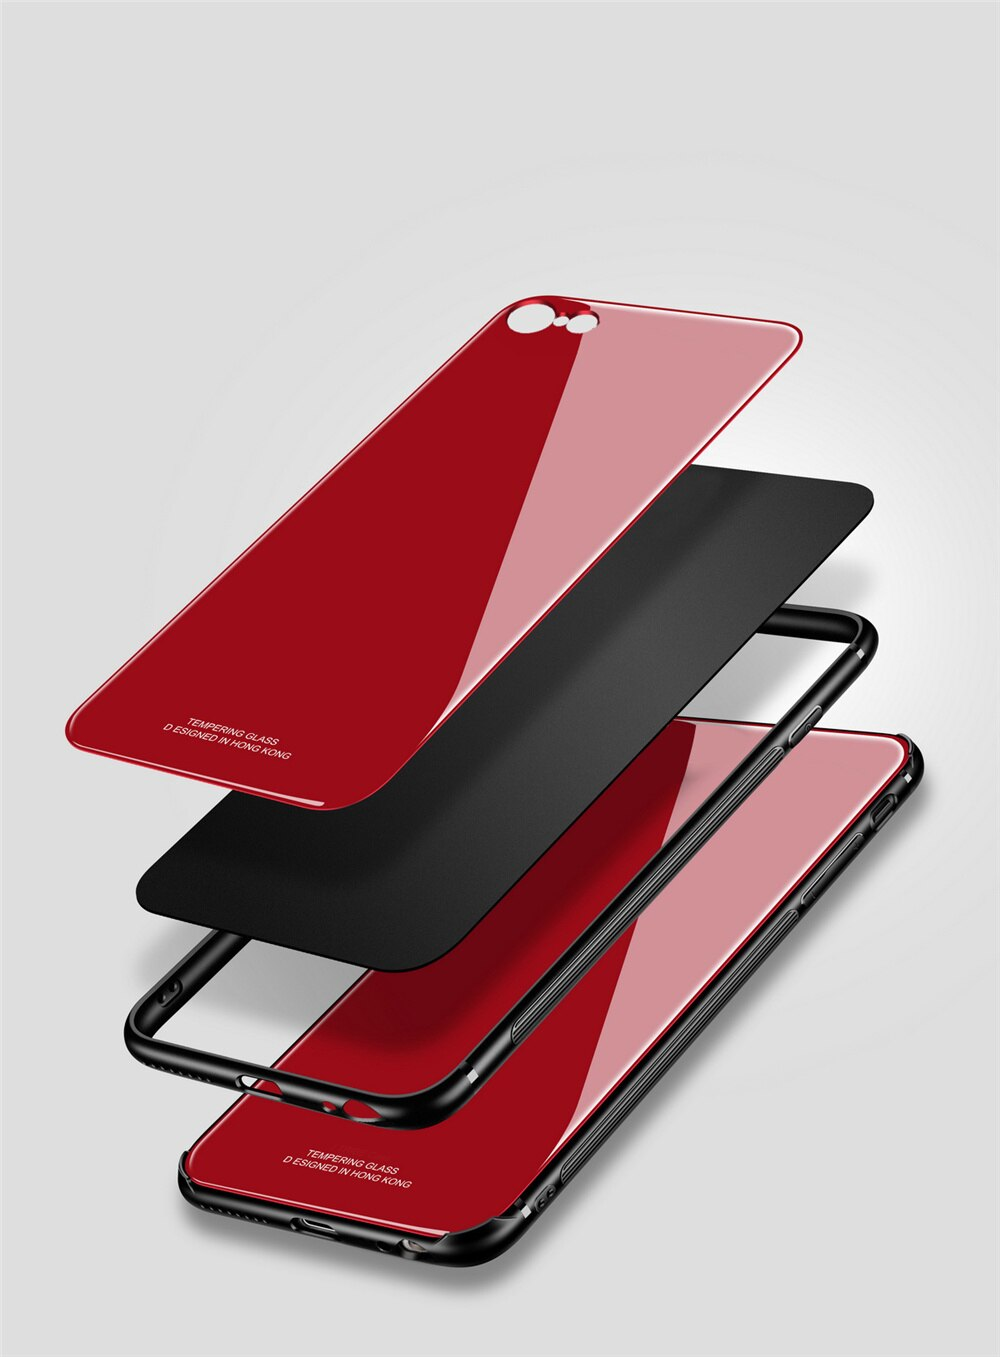 Tempered Glass Case for iPhone 7 6 6s 8 Plus X Xs Max XR Shockproof Soft TPU Edge Silicone Hard Back Cover for iPhone 7 8 Plus